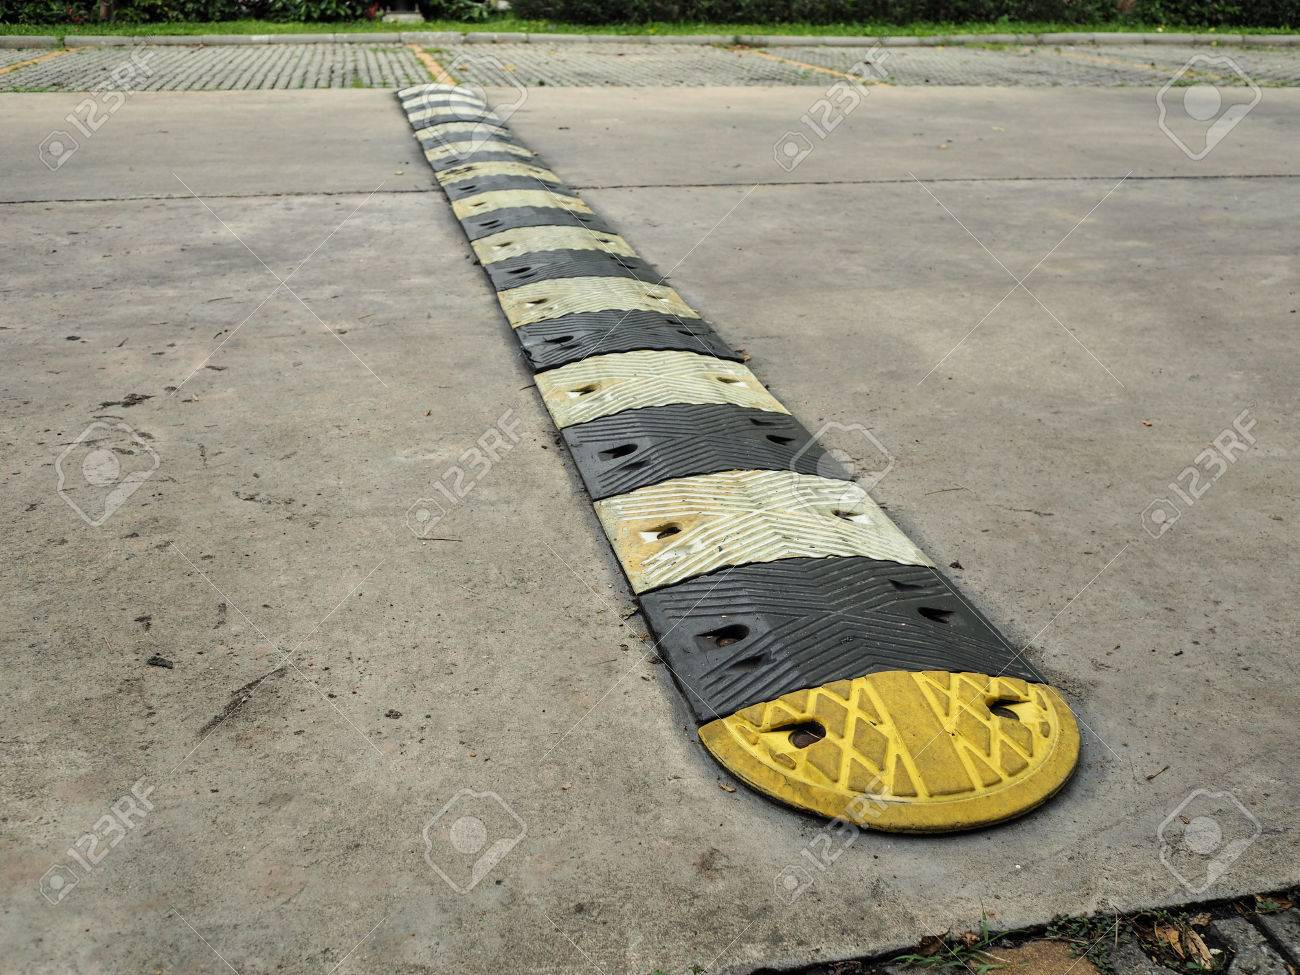 An old pale yellow and black traffic safety speed bump on a concrete road  at parking